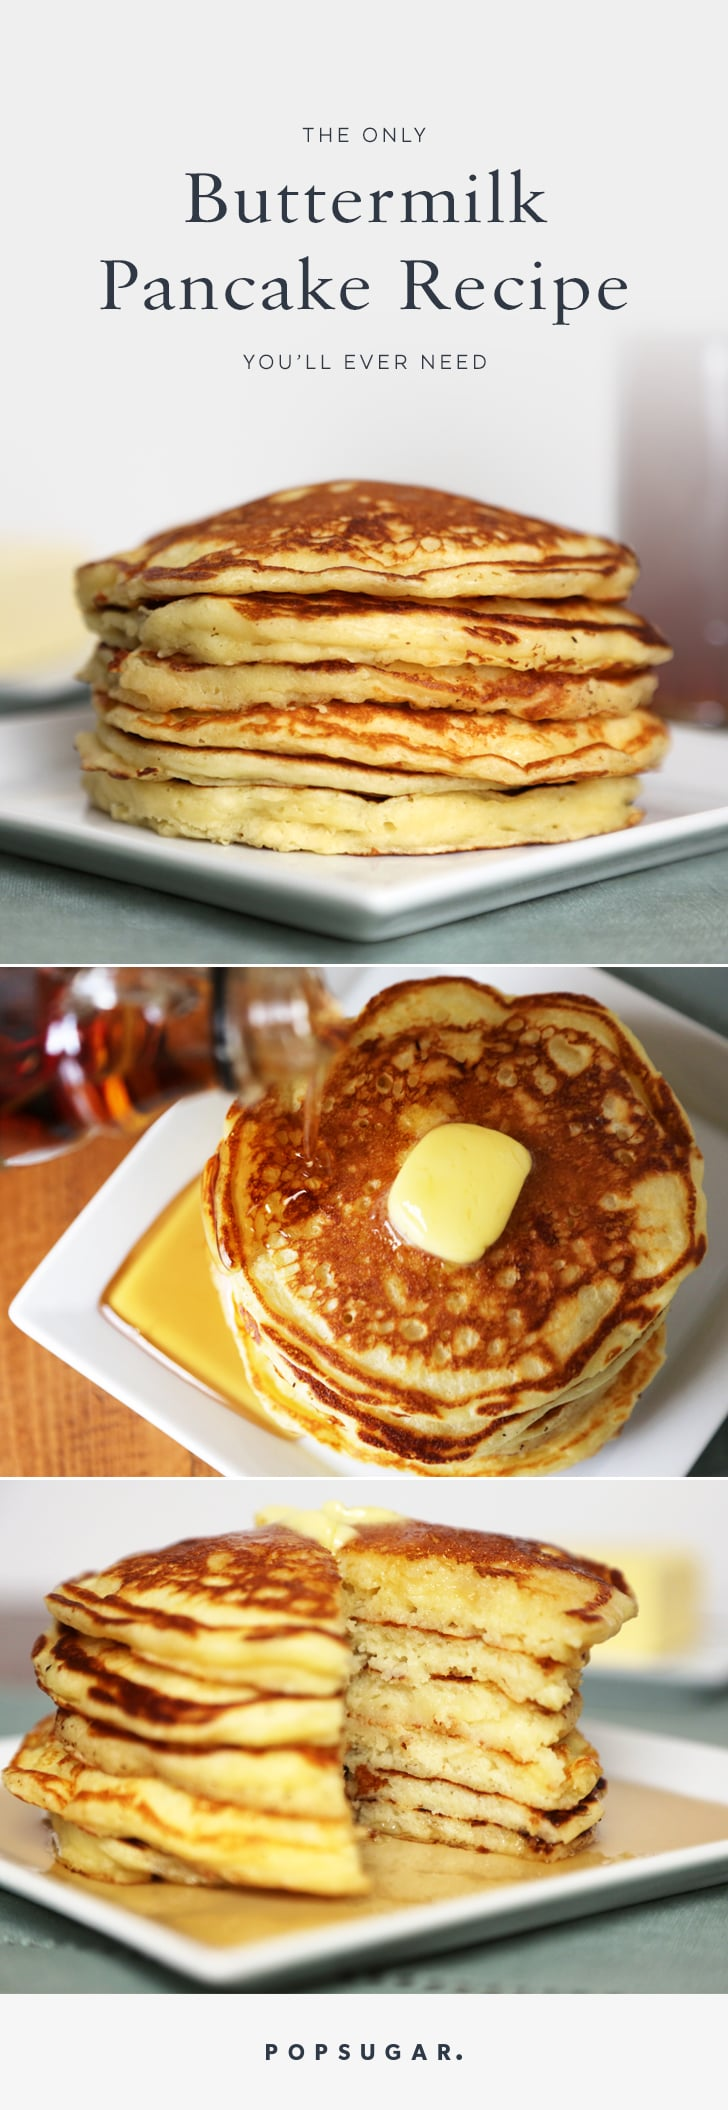 Buttermilk pancake recipe popsugar food share this link copy while many resort to pancake mix when making ccuart